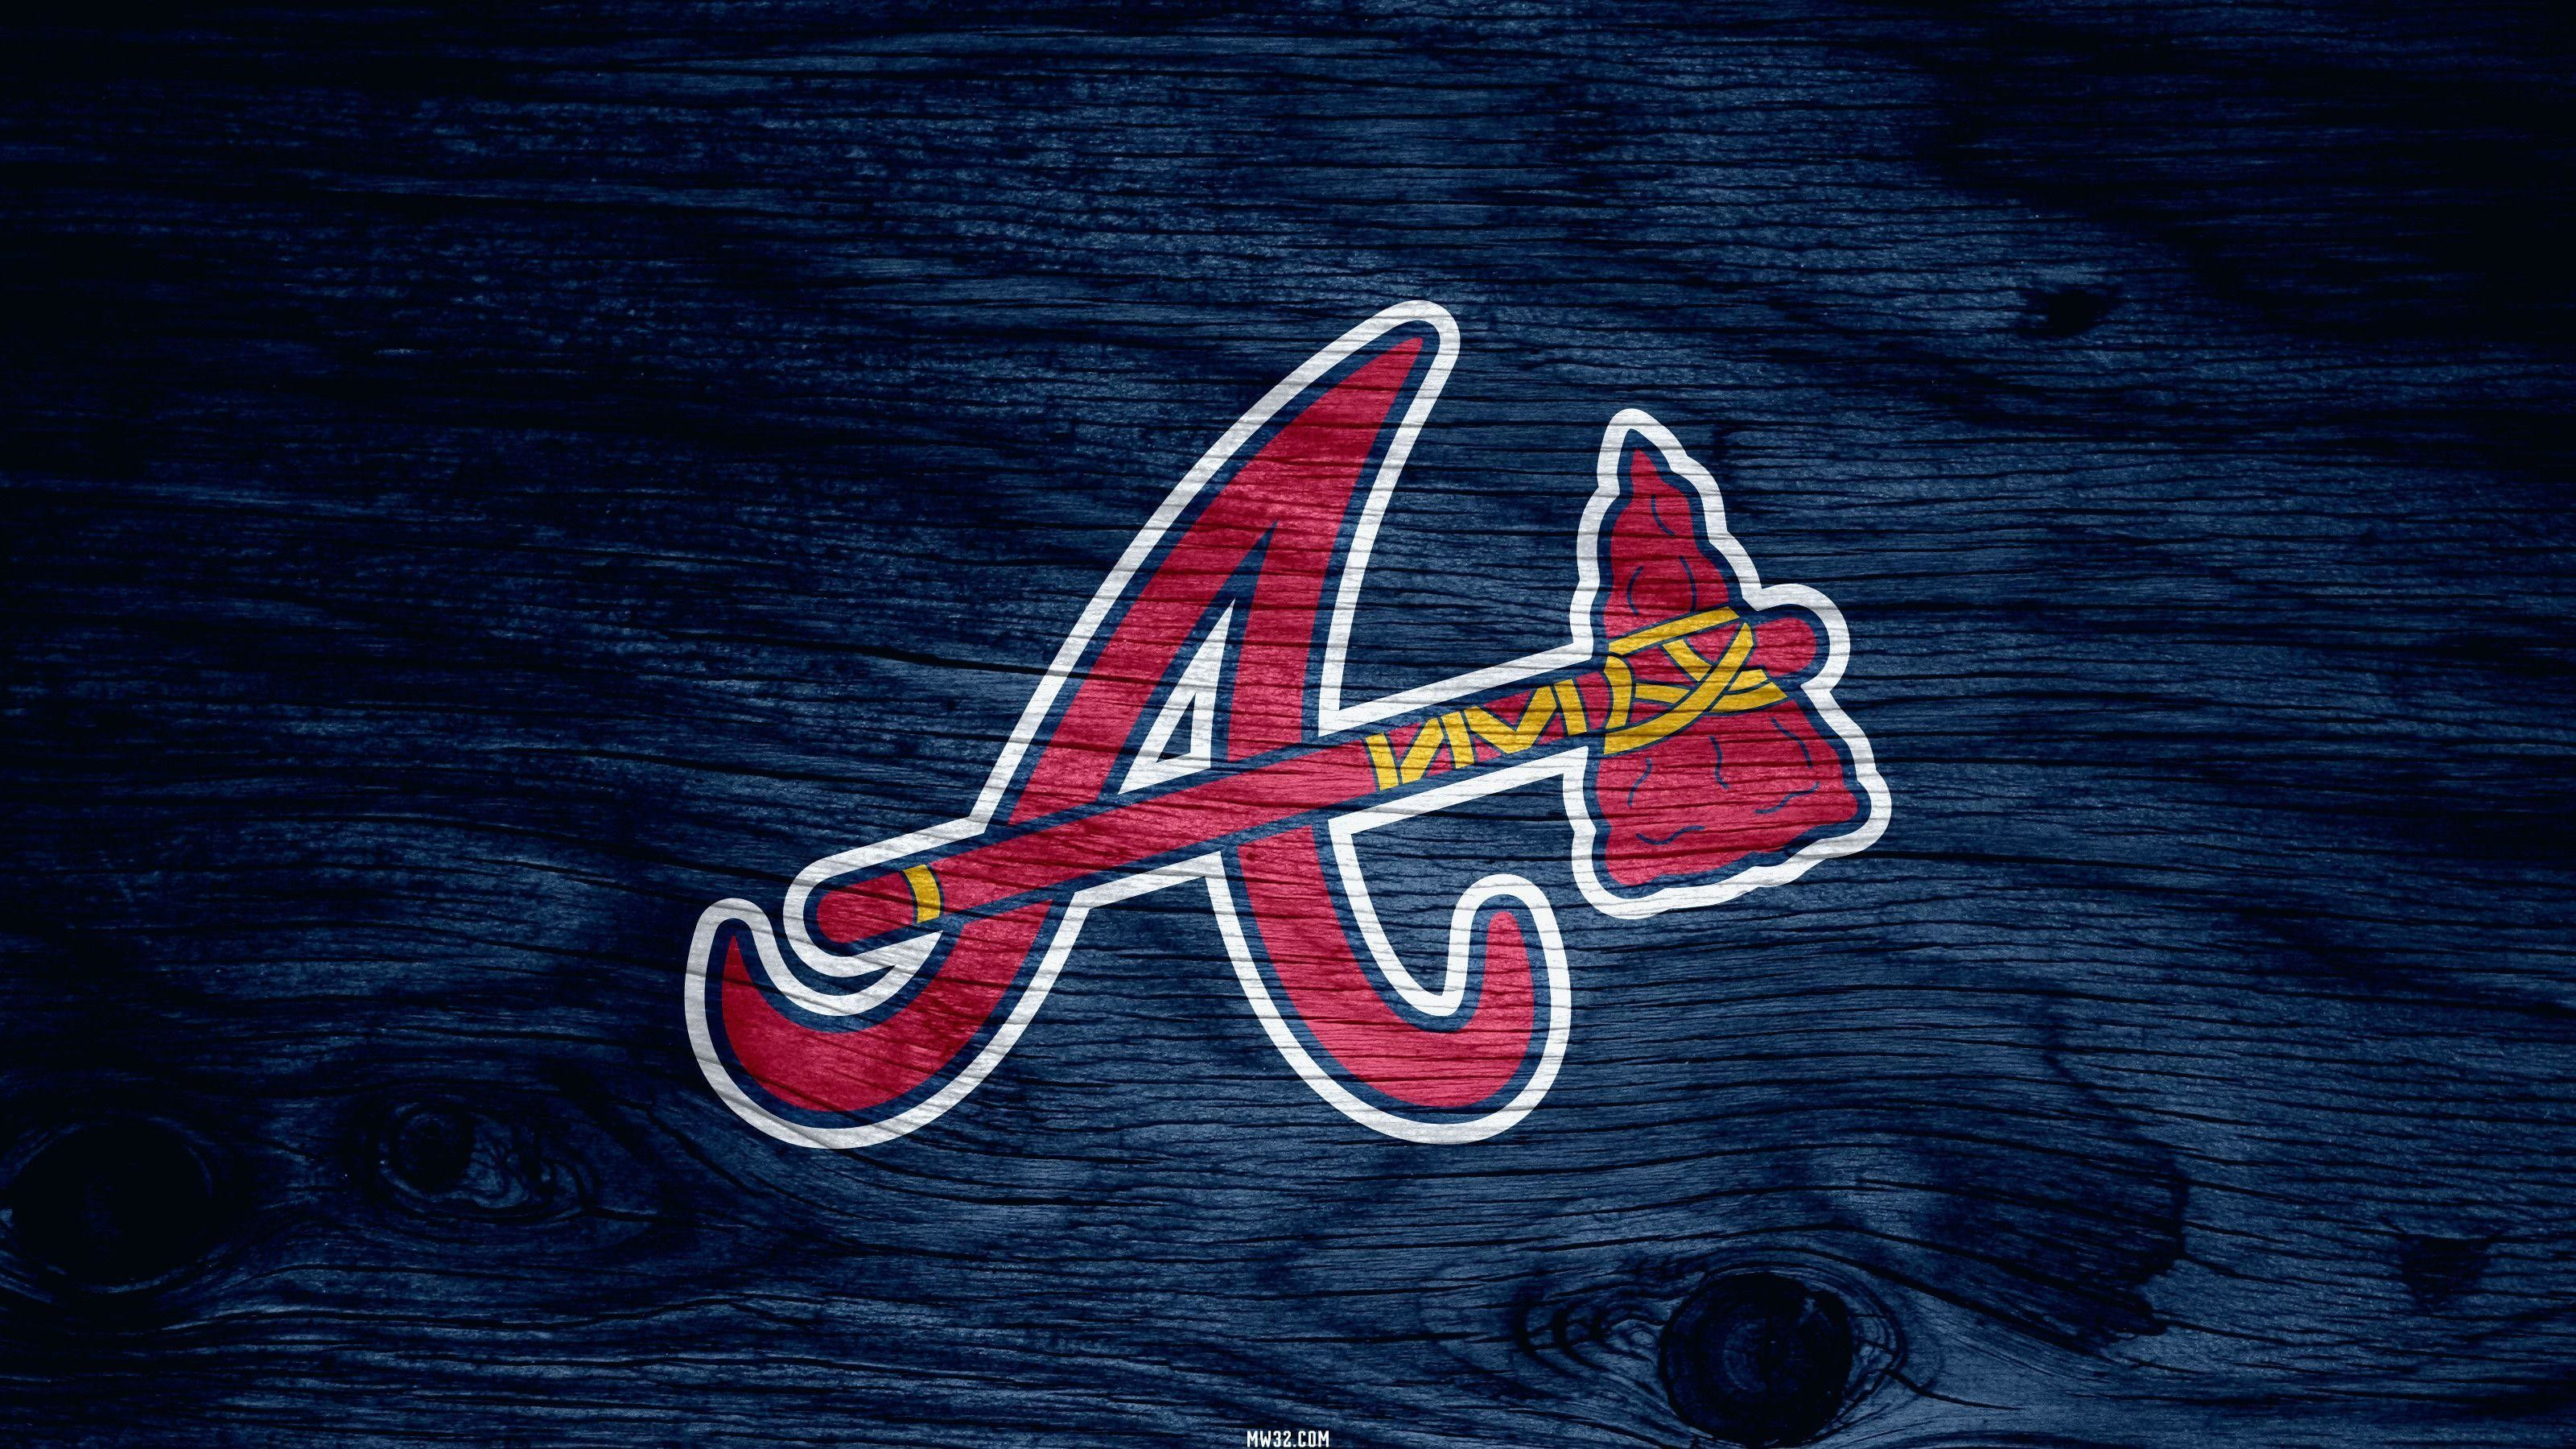 51 Braves Iphone Wallpapers On Wallpaperplay Atlanta Braves Wallpaper Braves Iphone Wallpaper Brave Wallpaper